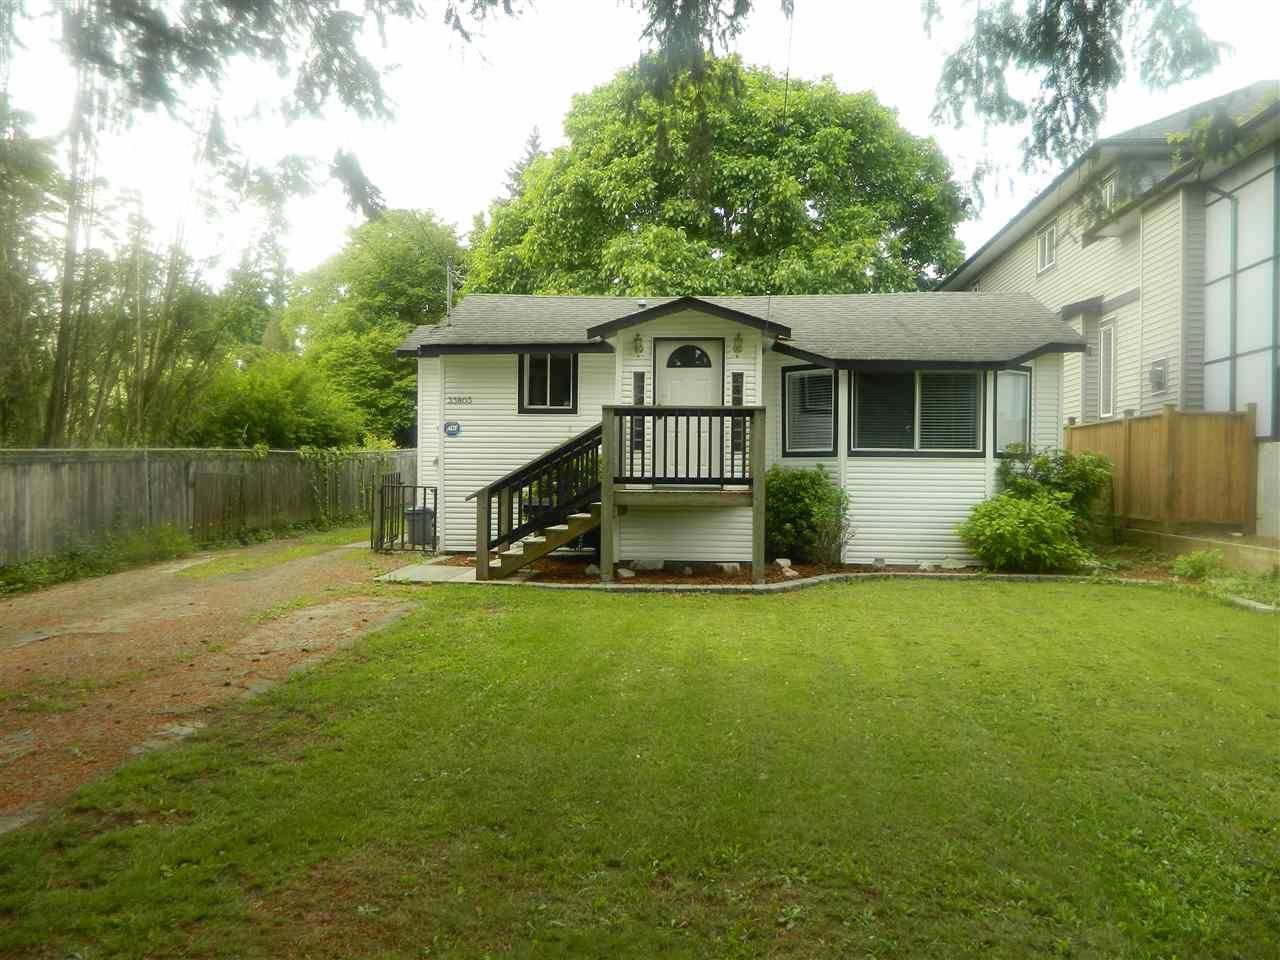 Main Photo: 33803 MAYFAIR Avenue in Abbotsford: Central Abbotsford House for sale : MLS®# R2462341